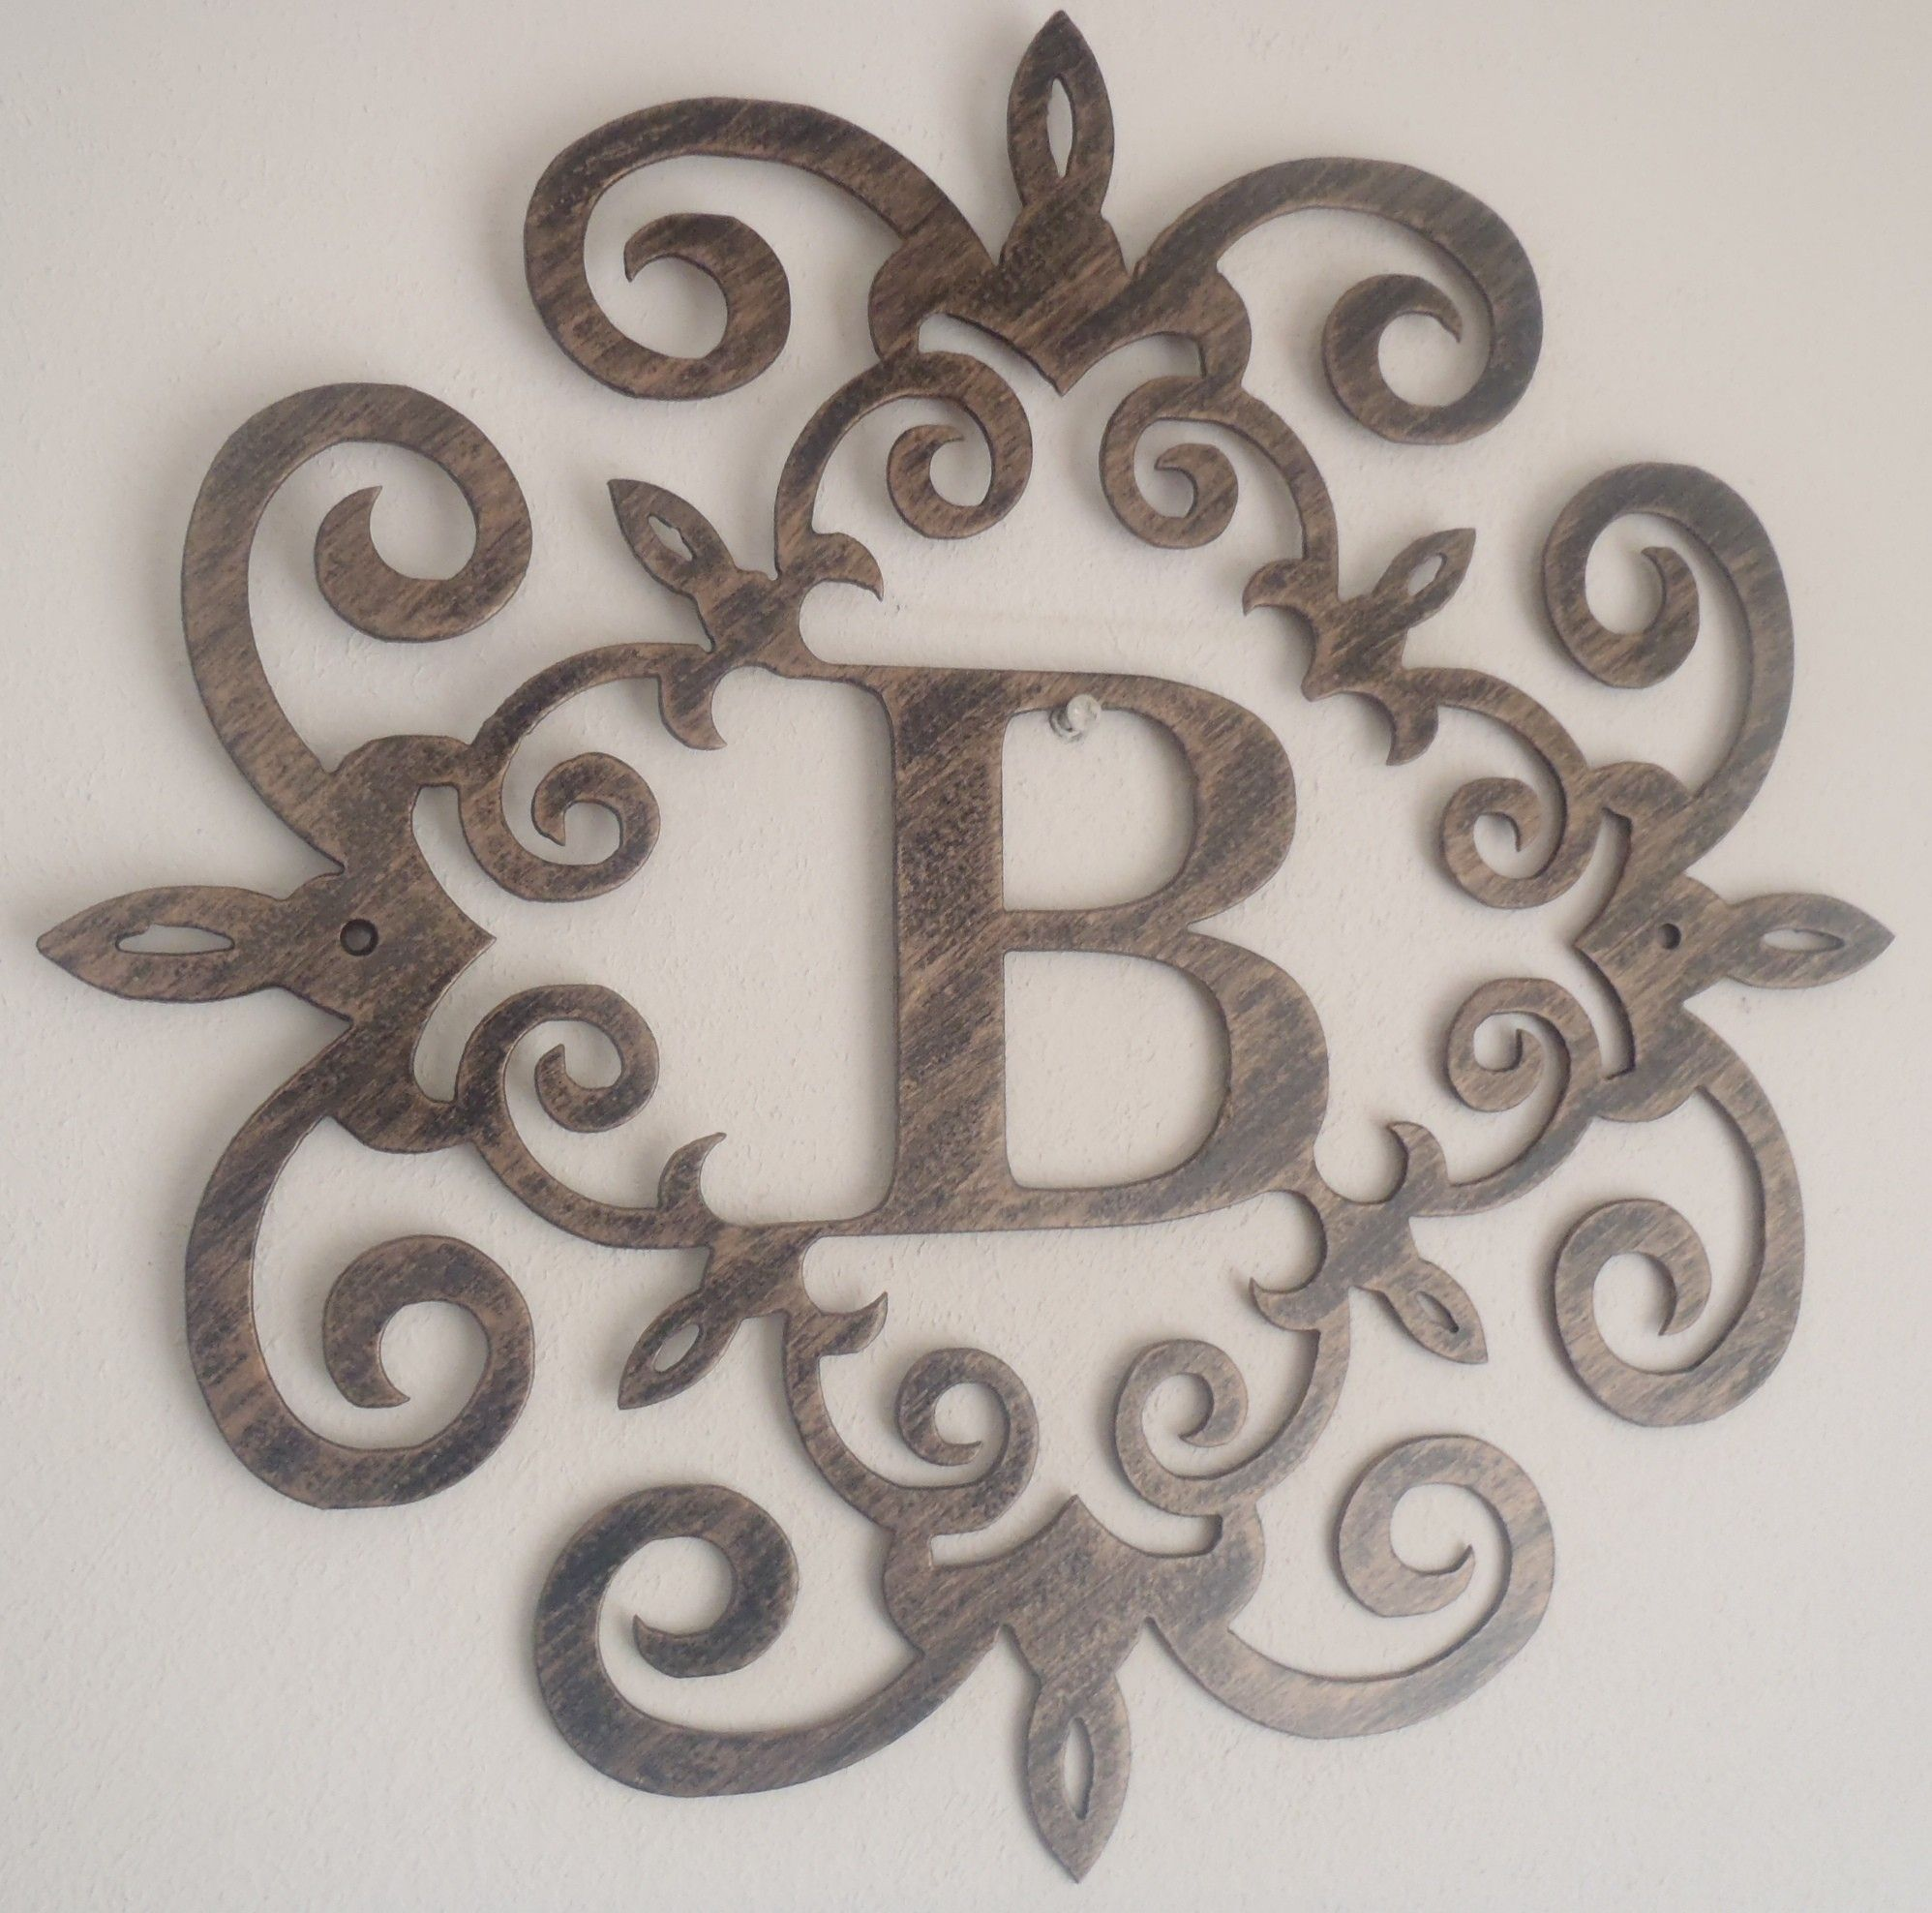 Family Initial Monogram Inside A Metal Scroll With B Letter 30 Inches Wall Decor Metal Art